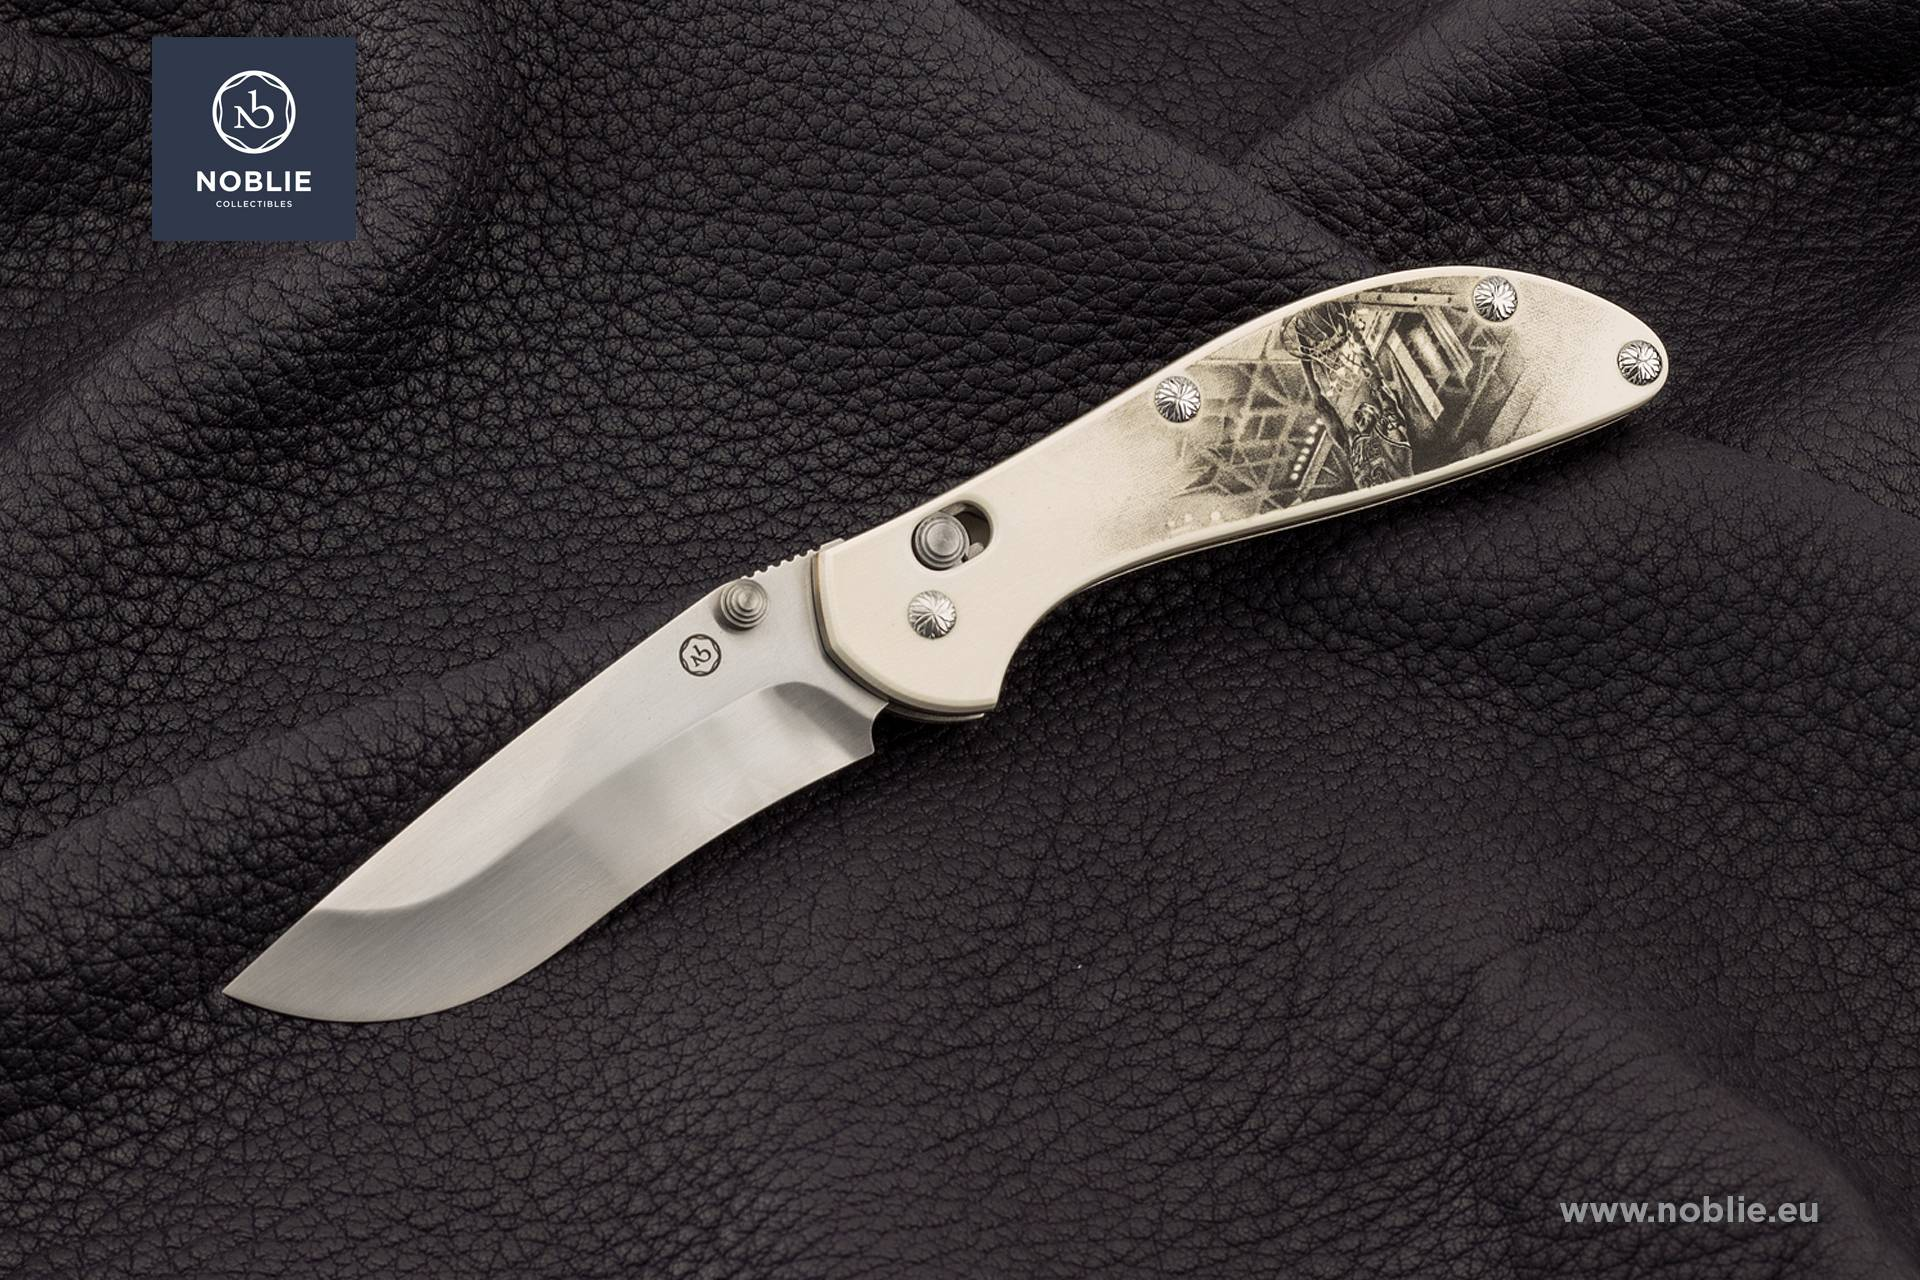 Collectible folding knives